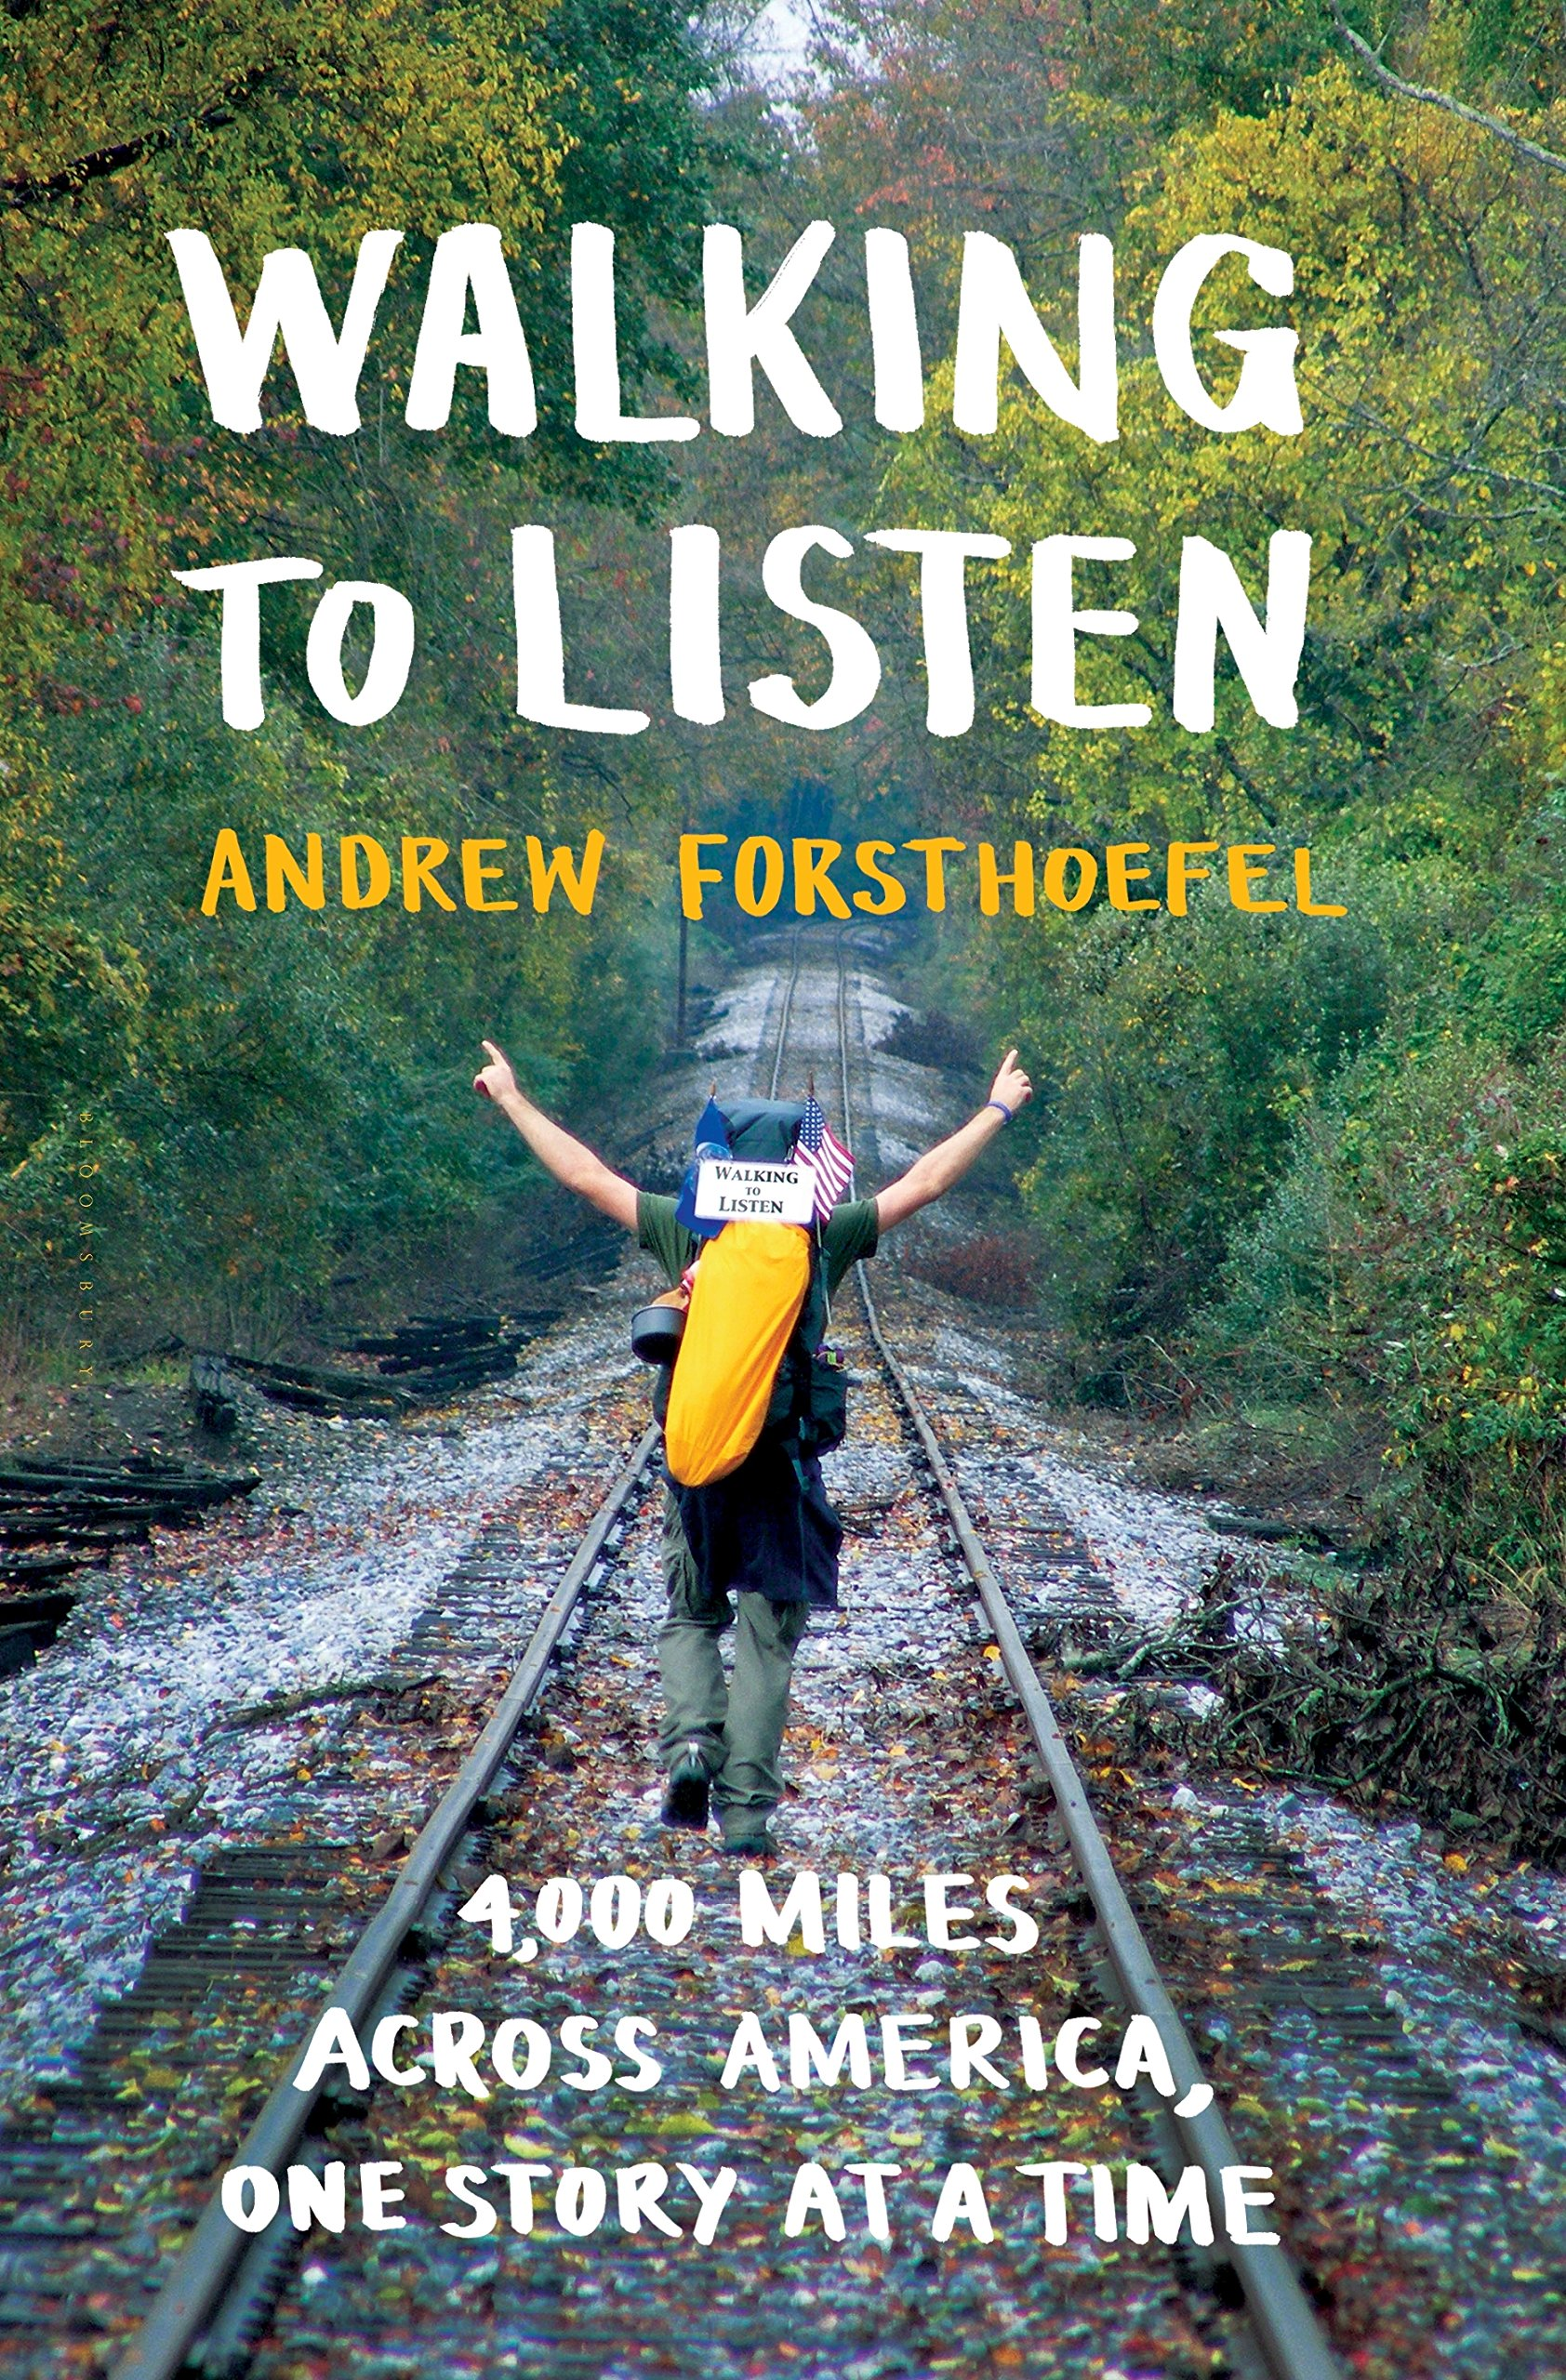 Walking to listen 4 000 miles across america one story at a walking to listen 4 000 miles across america one story at a time andrew forsthoefel 9781632867001 amazon books fandeluxe Images